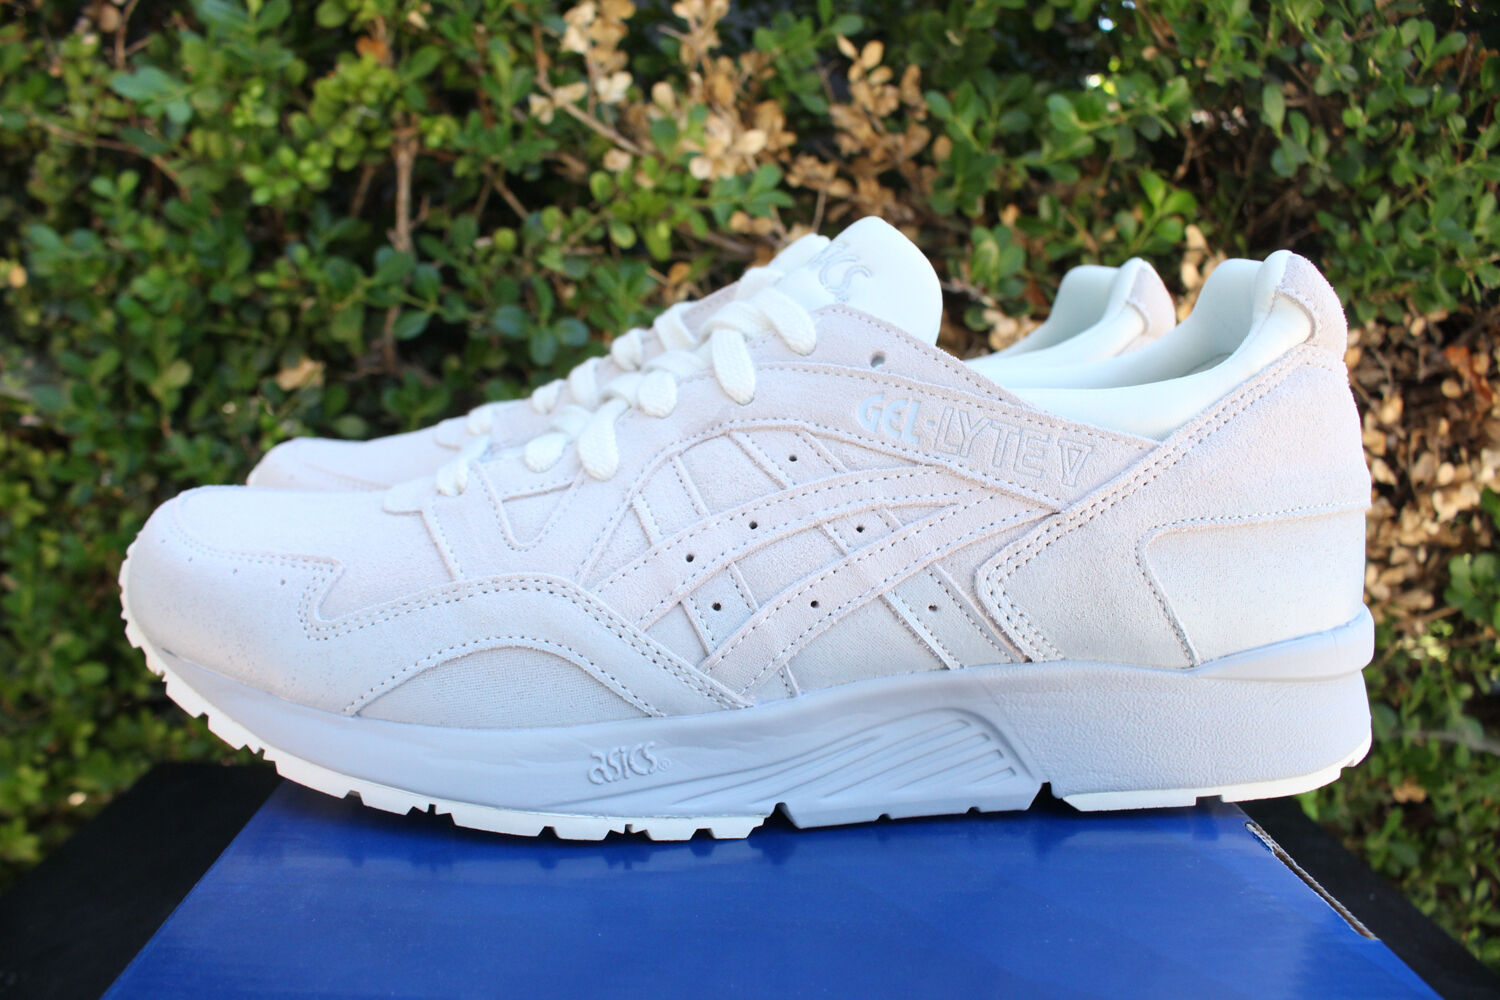 ASICS GEL LYTE V 5 SZ 9 VANILLA CREAM GREY WHITE RUNNING SHOES H7Z2L 0000